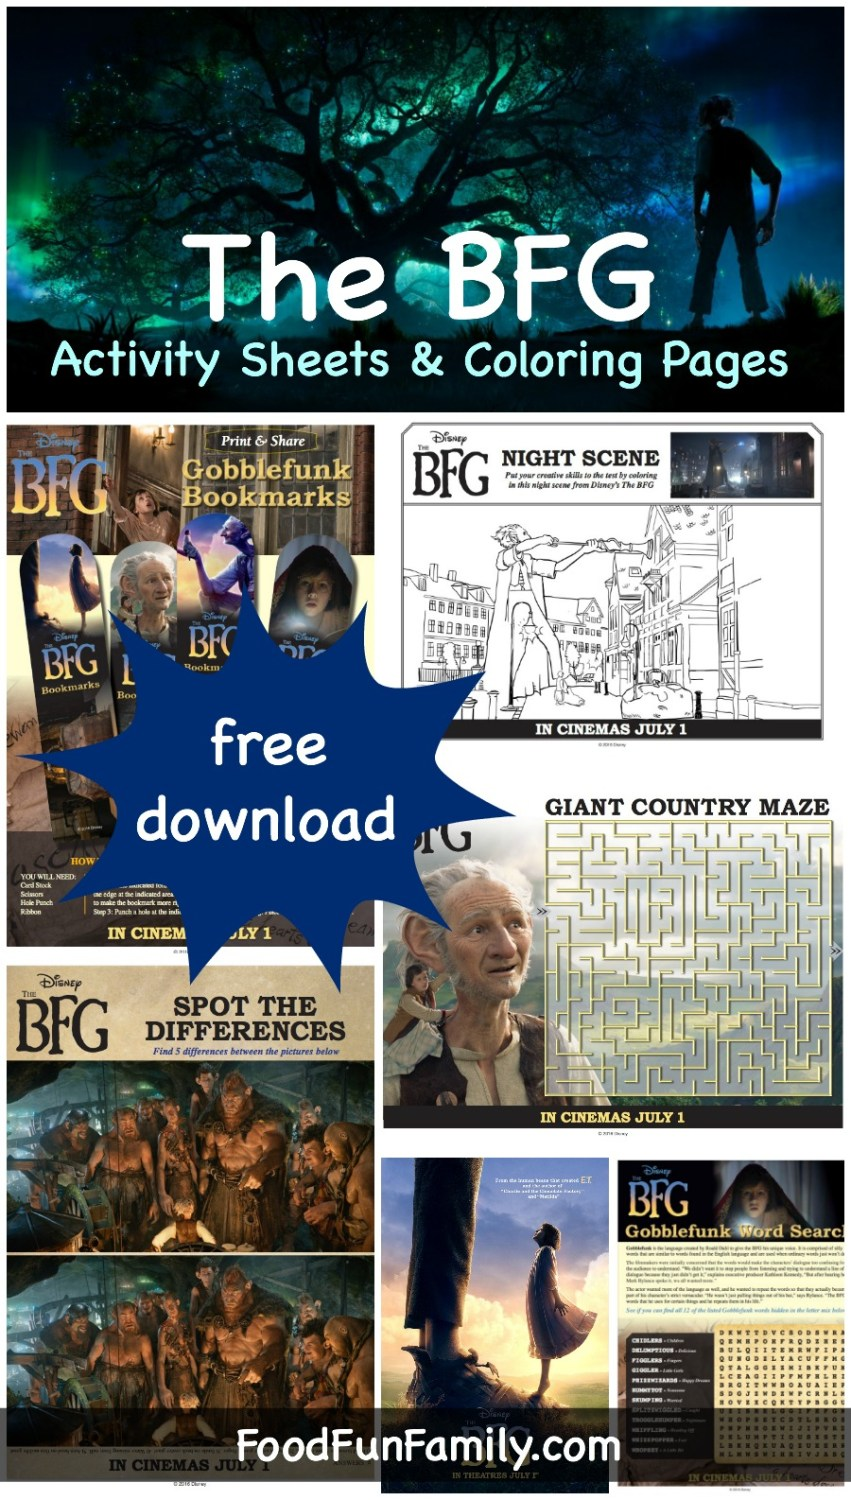 Disney's The BFG Activity sheets and Coloring pages - free printables for kids!